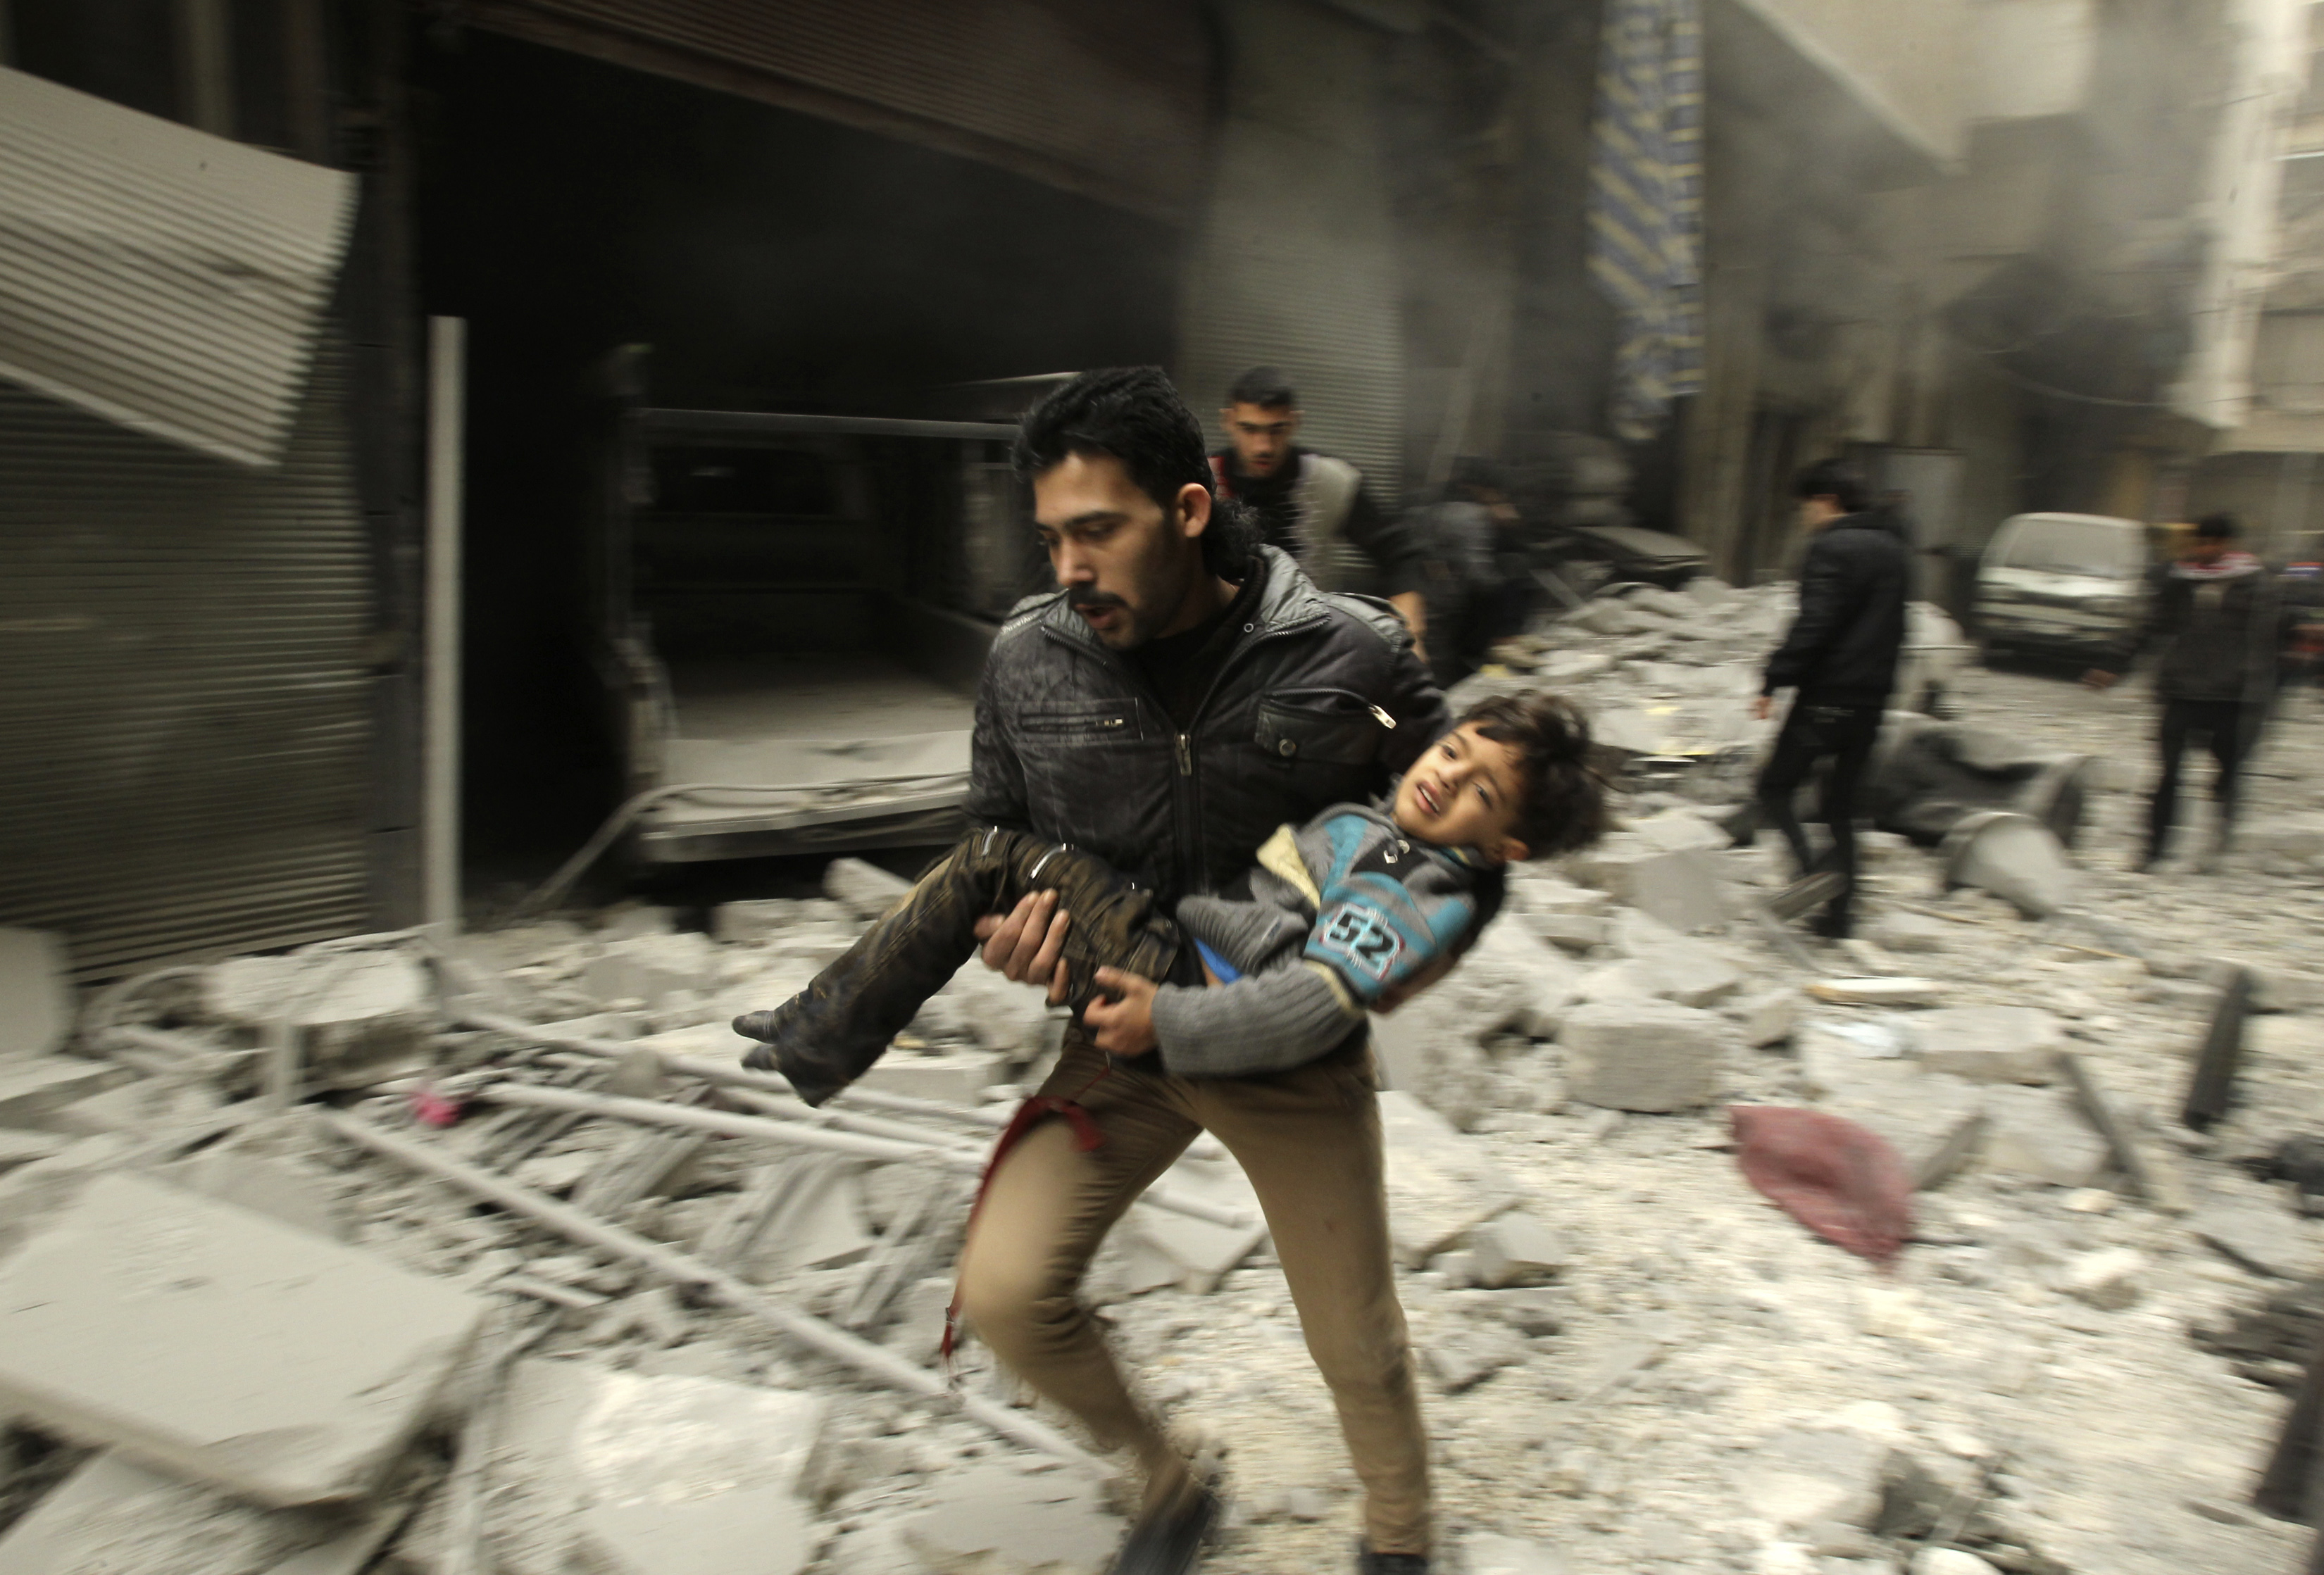 10 Reasons The Syrian War Is Even Worse Than You Imagined